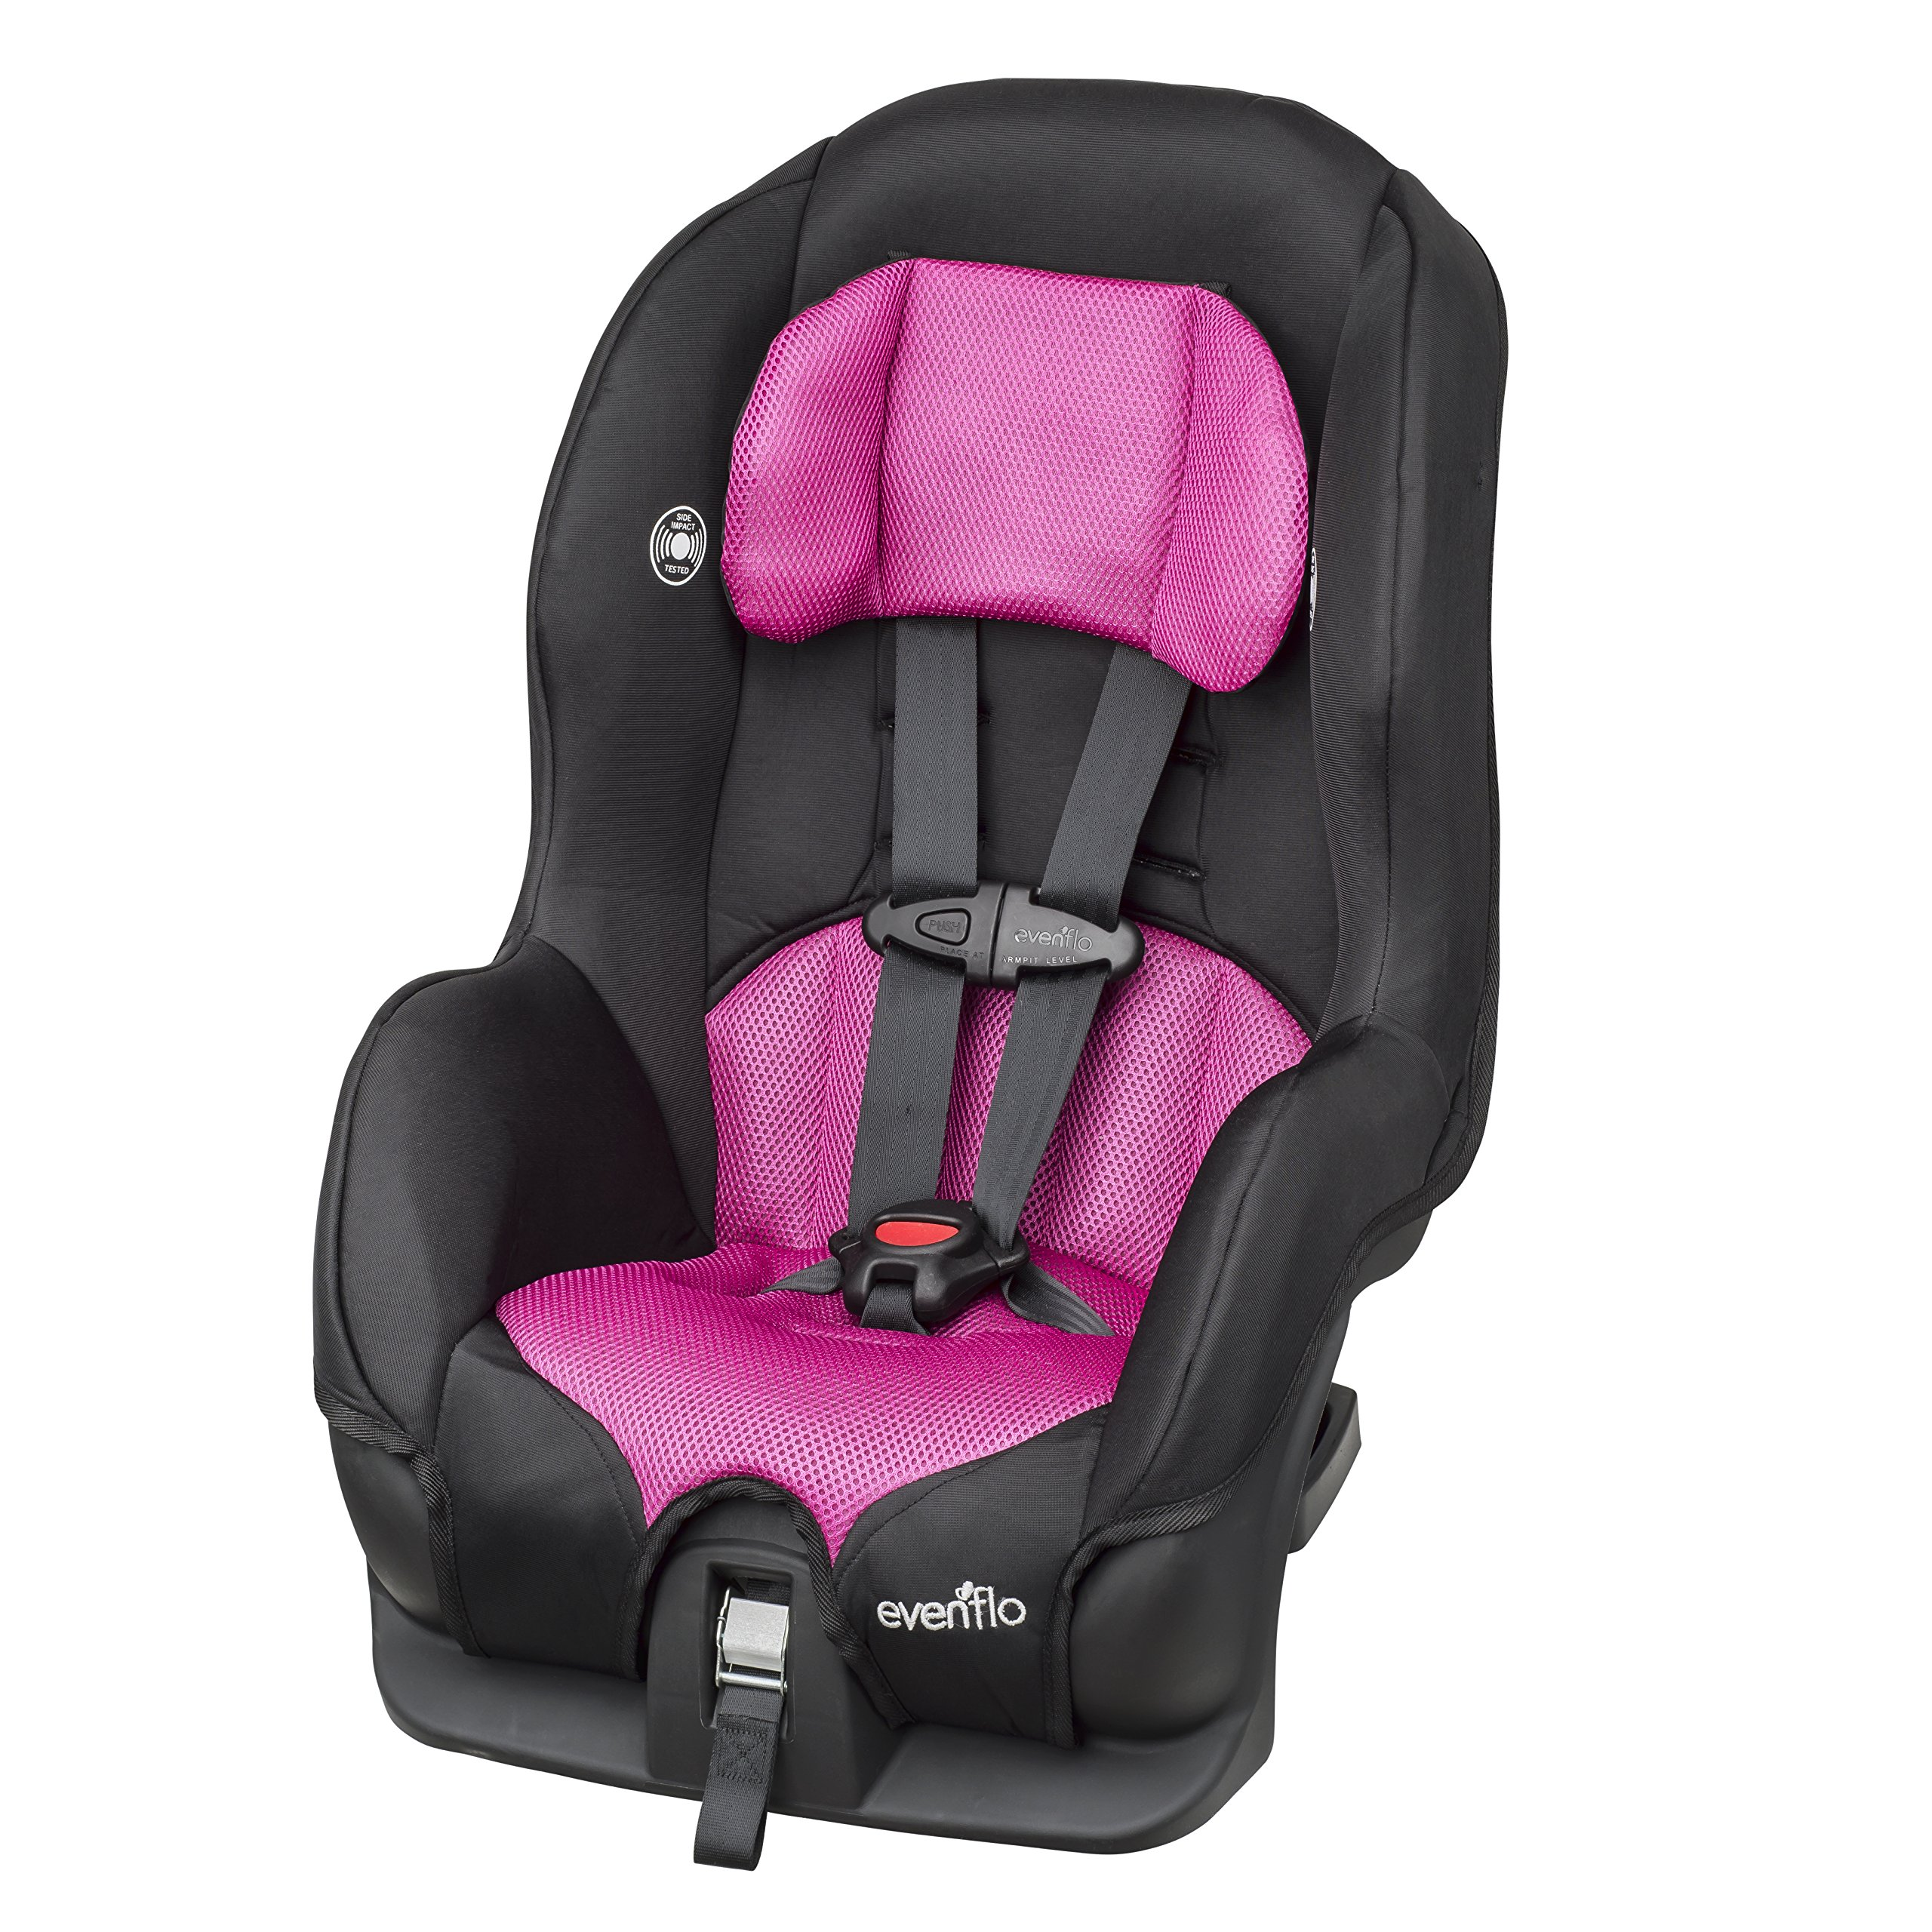 Evenflo Tribute LX Convertible Car Seat - Abigail